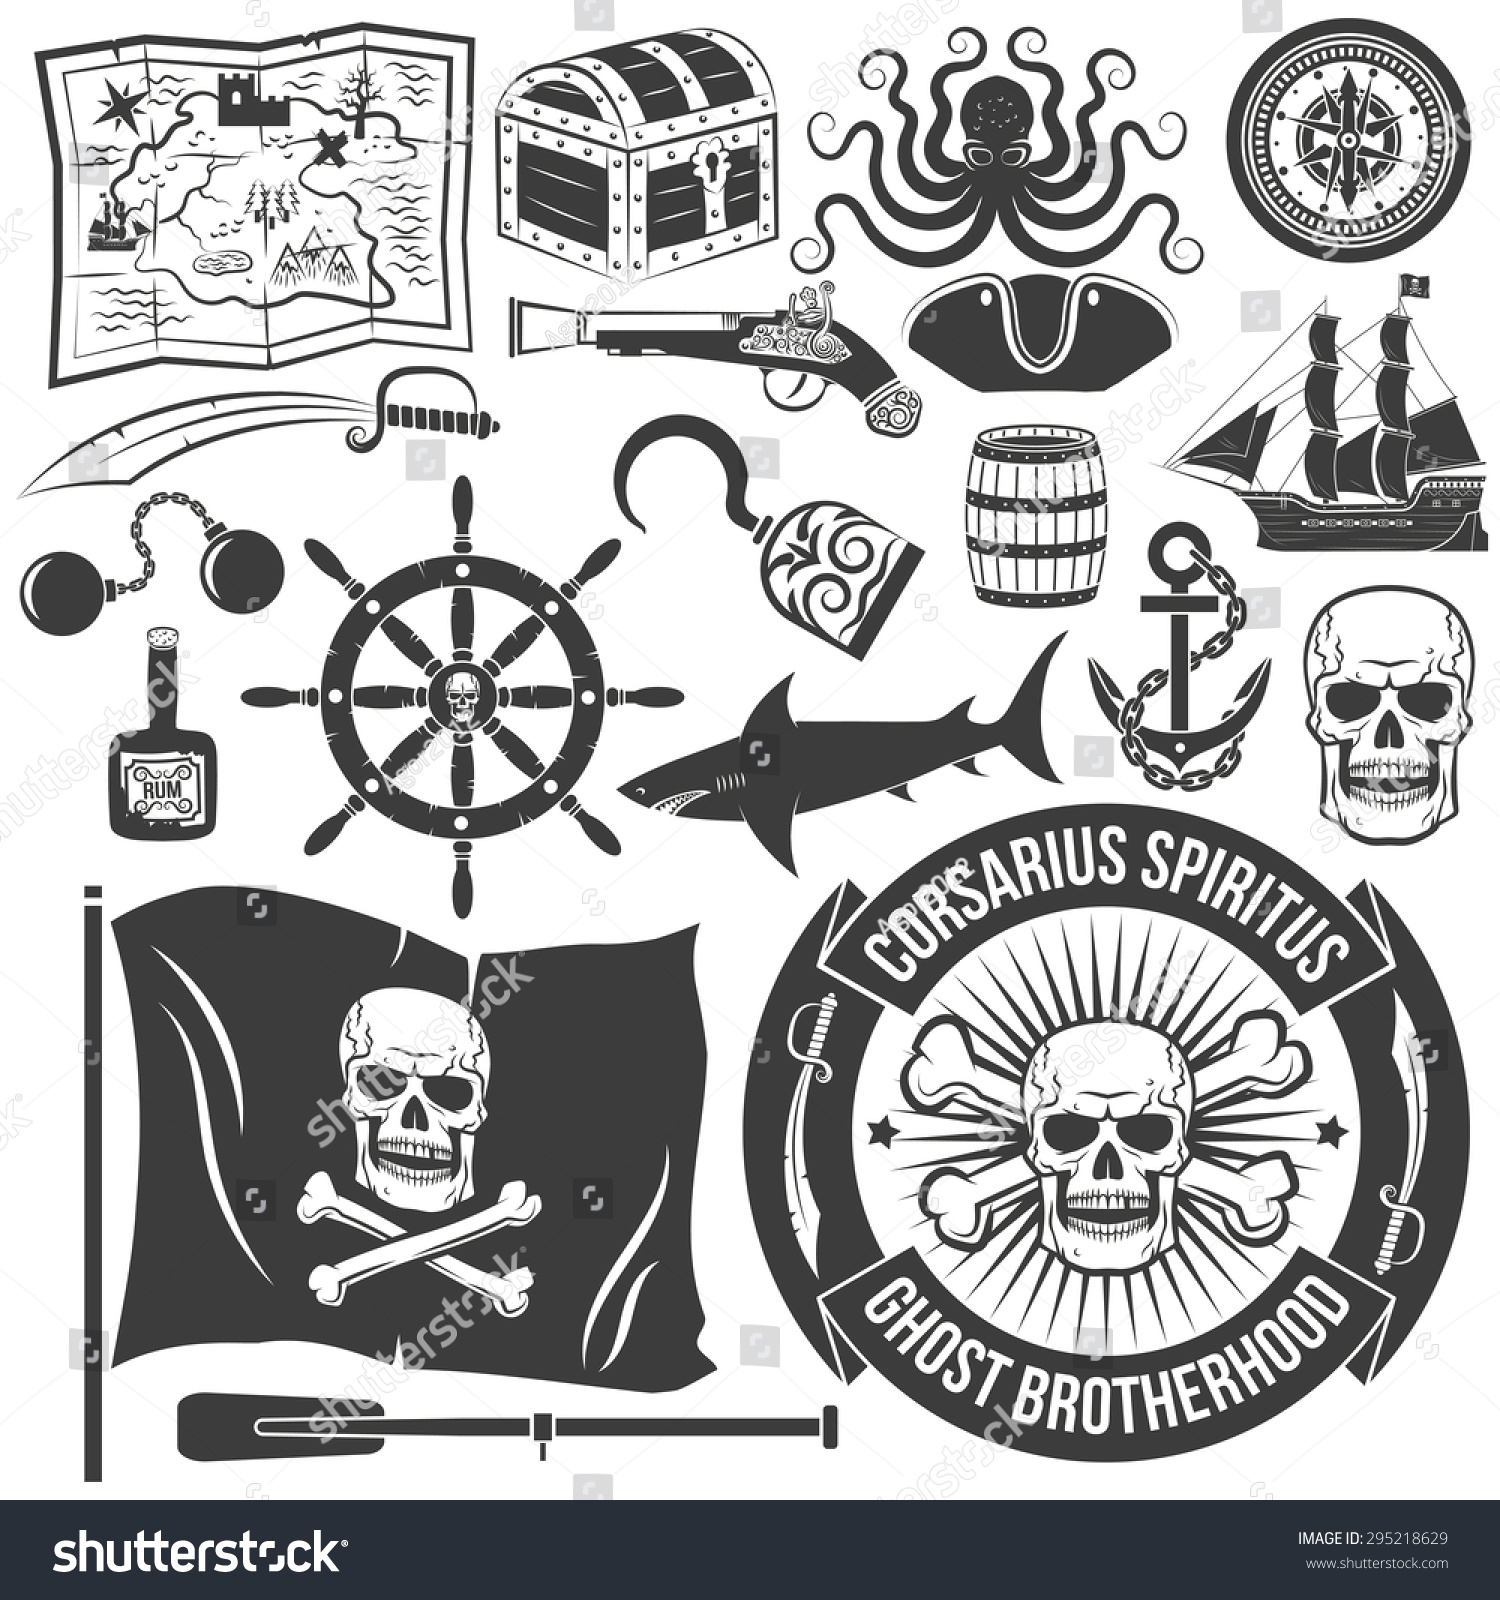 set create logo pirate tattoos marine stock vector 295218629 shutterstock. Black Bedroom Furniture Sets. Home Design Ideas